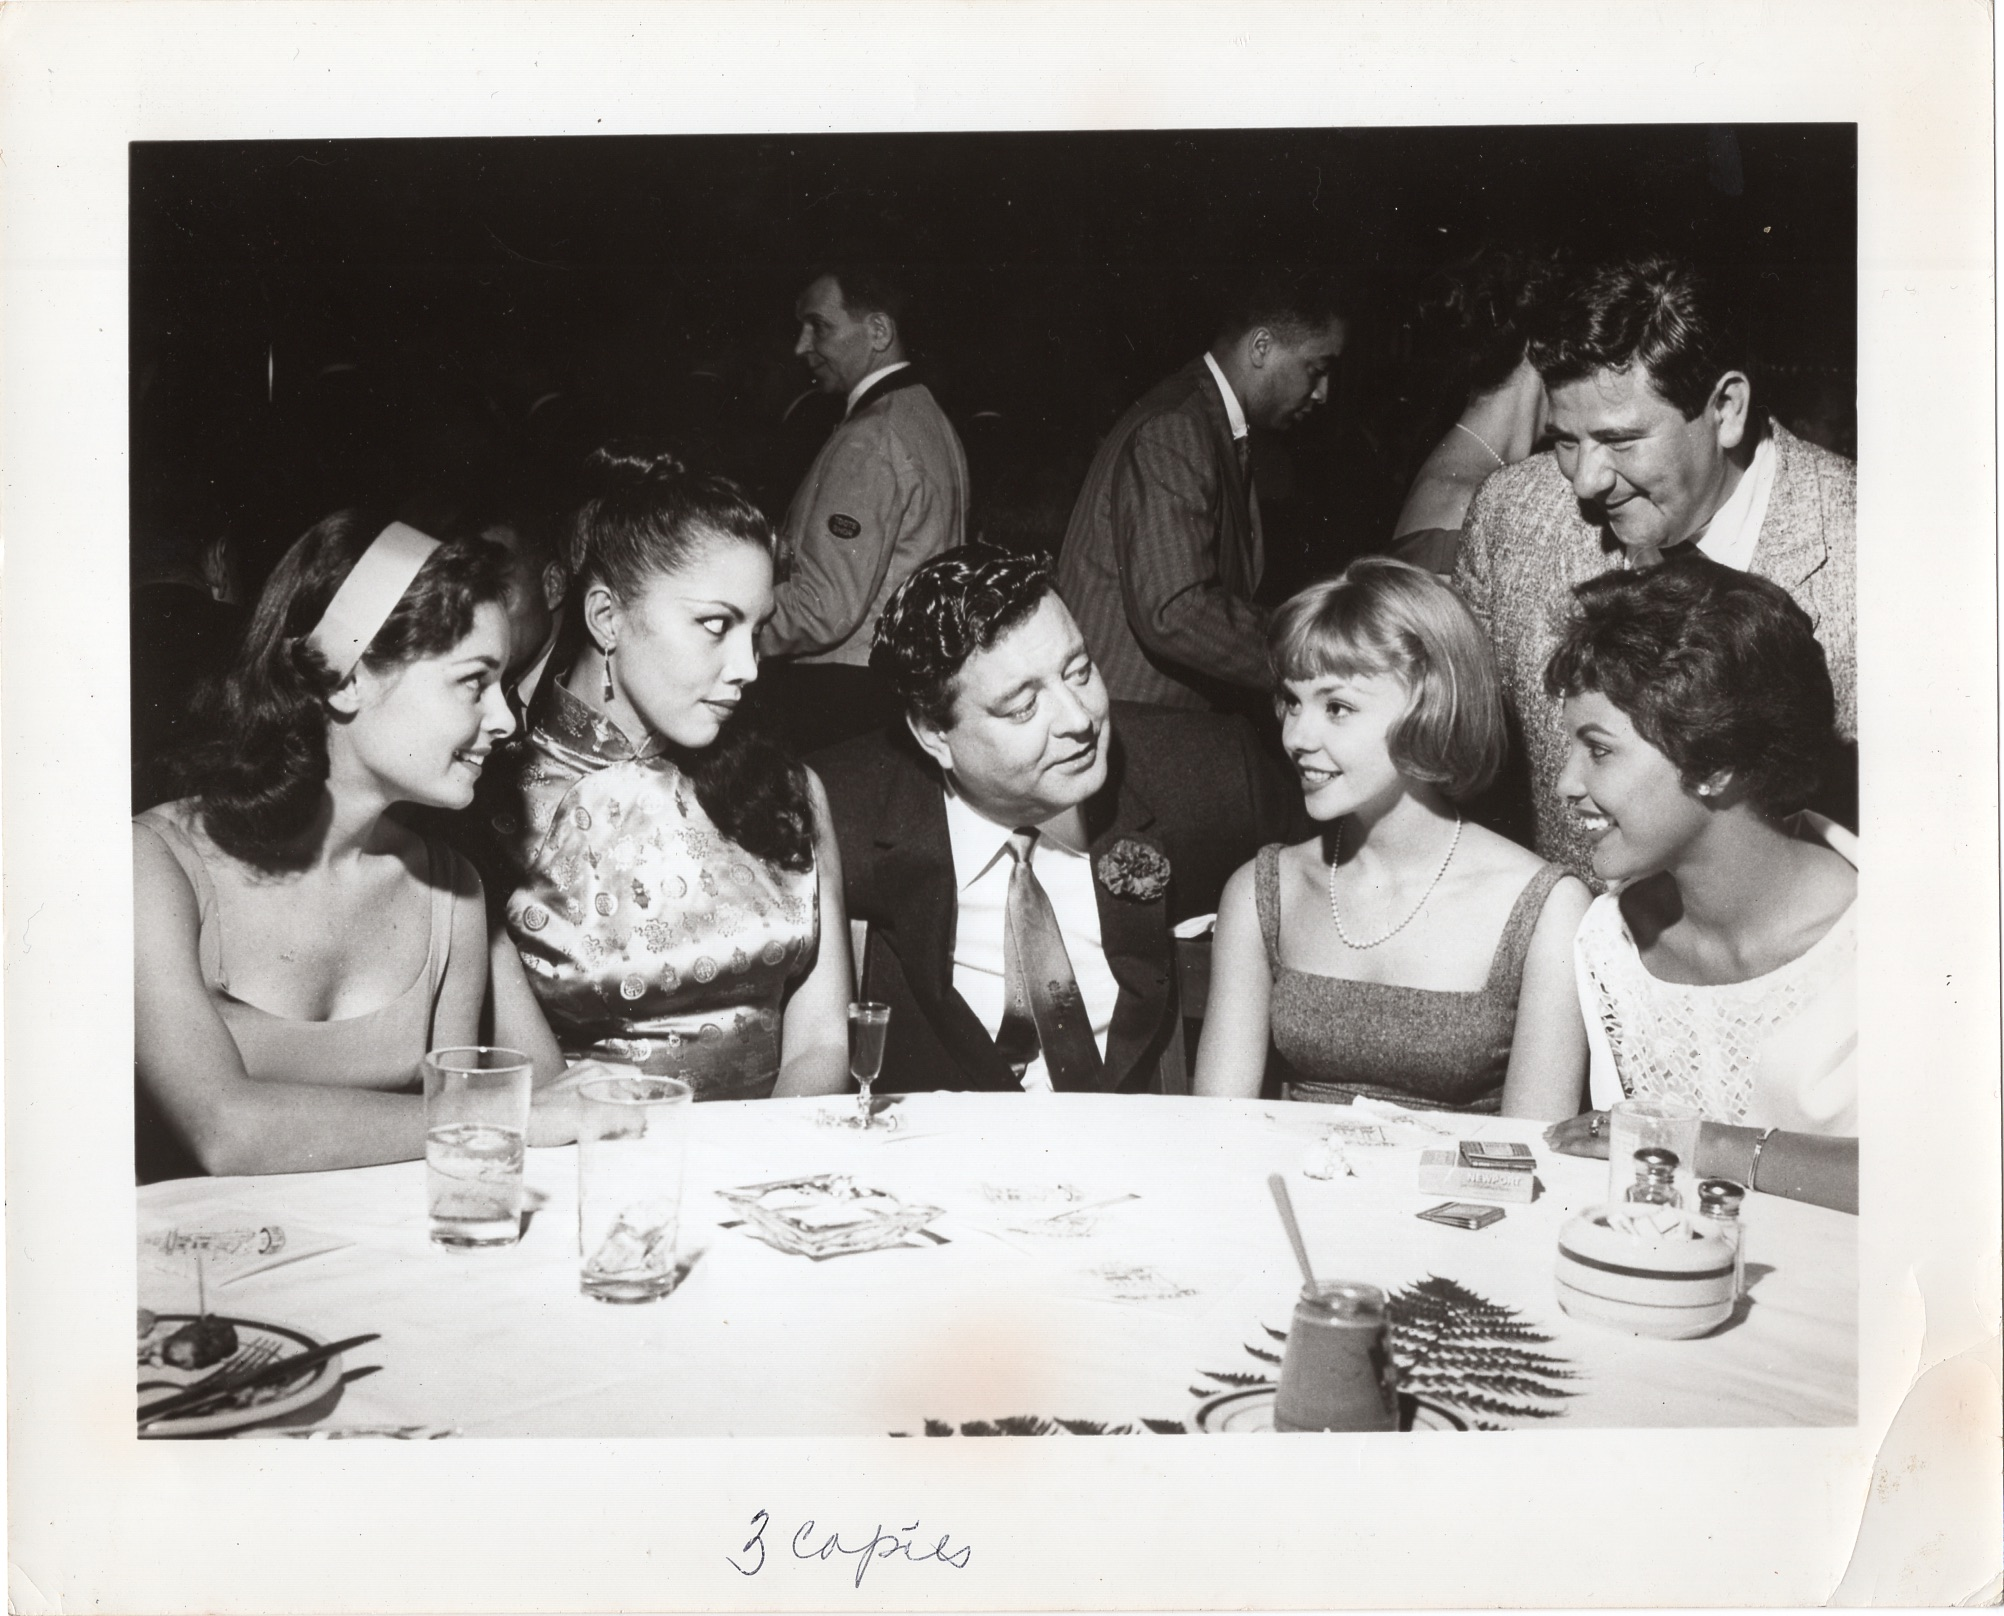 From left to right: Jeanne Rejaunier, Carmen Austin, Jackie Gleason, Lorna Gillam, Buddy Hackett, and Lourdes Guerrero. Courtesy of Lourdes Guerrero Otis for LGM